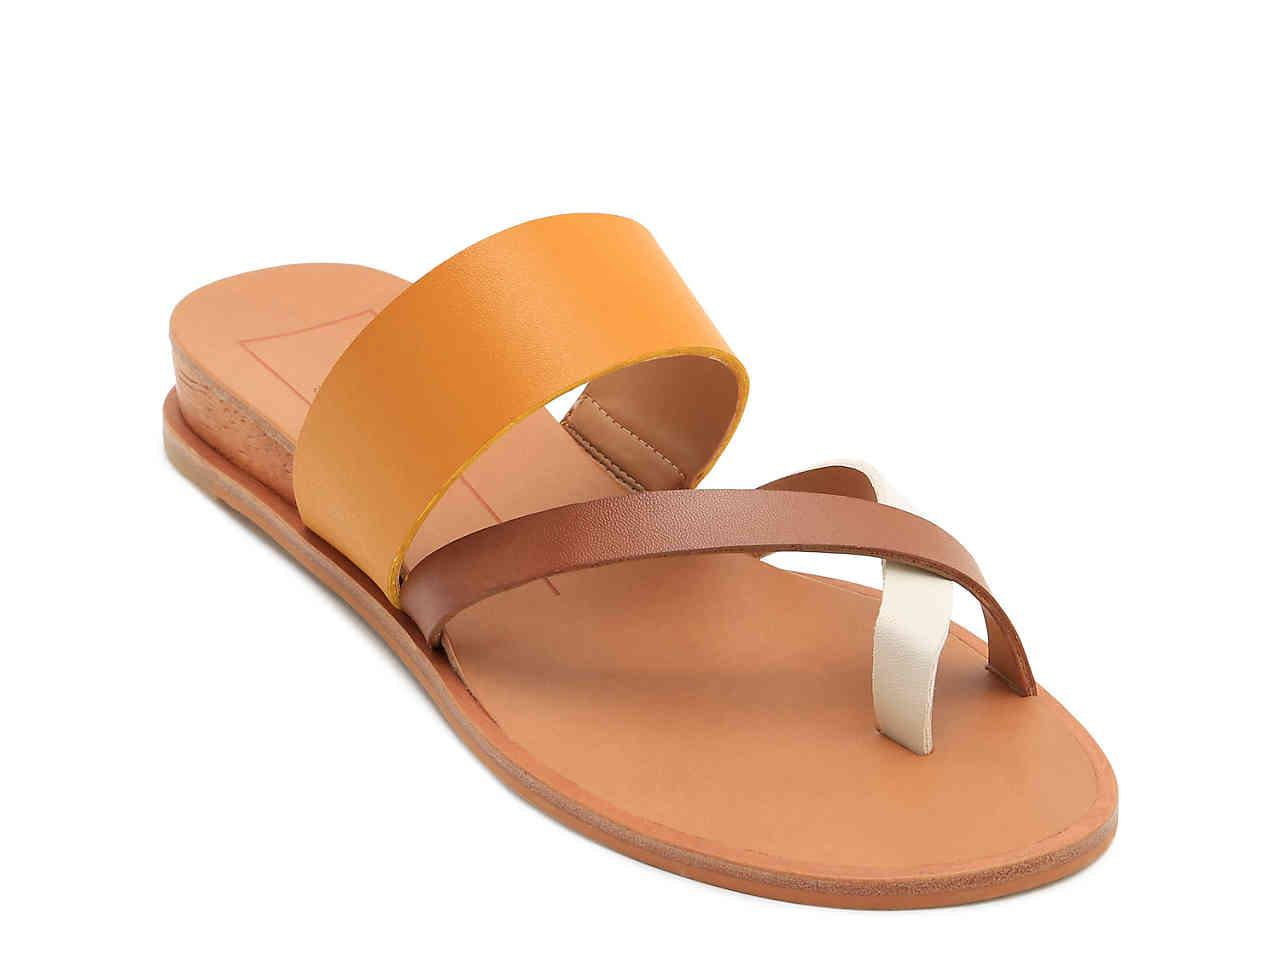 f99e275c3b8 Lyst - Dolce Vita Paddy Sandal in Brown